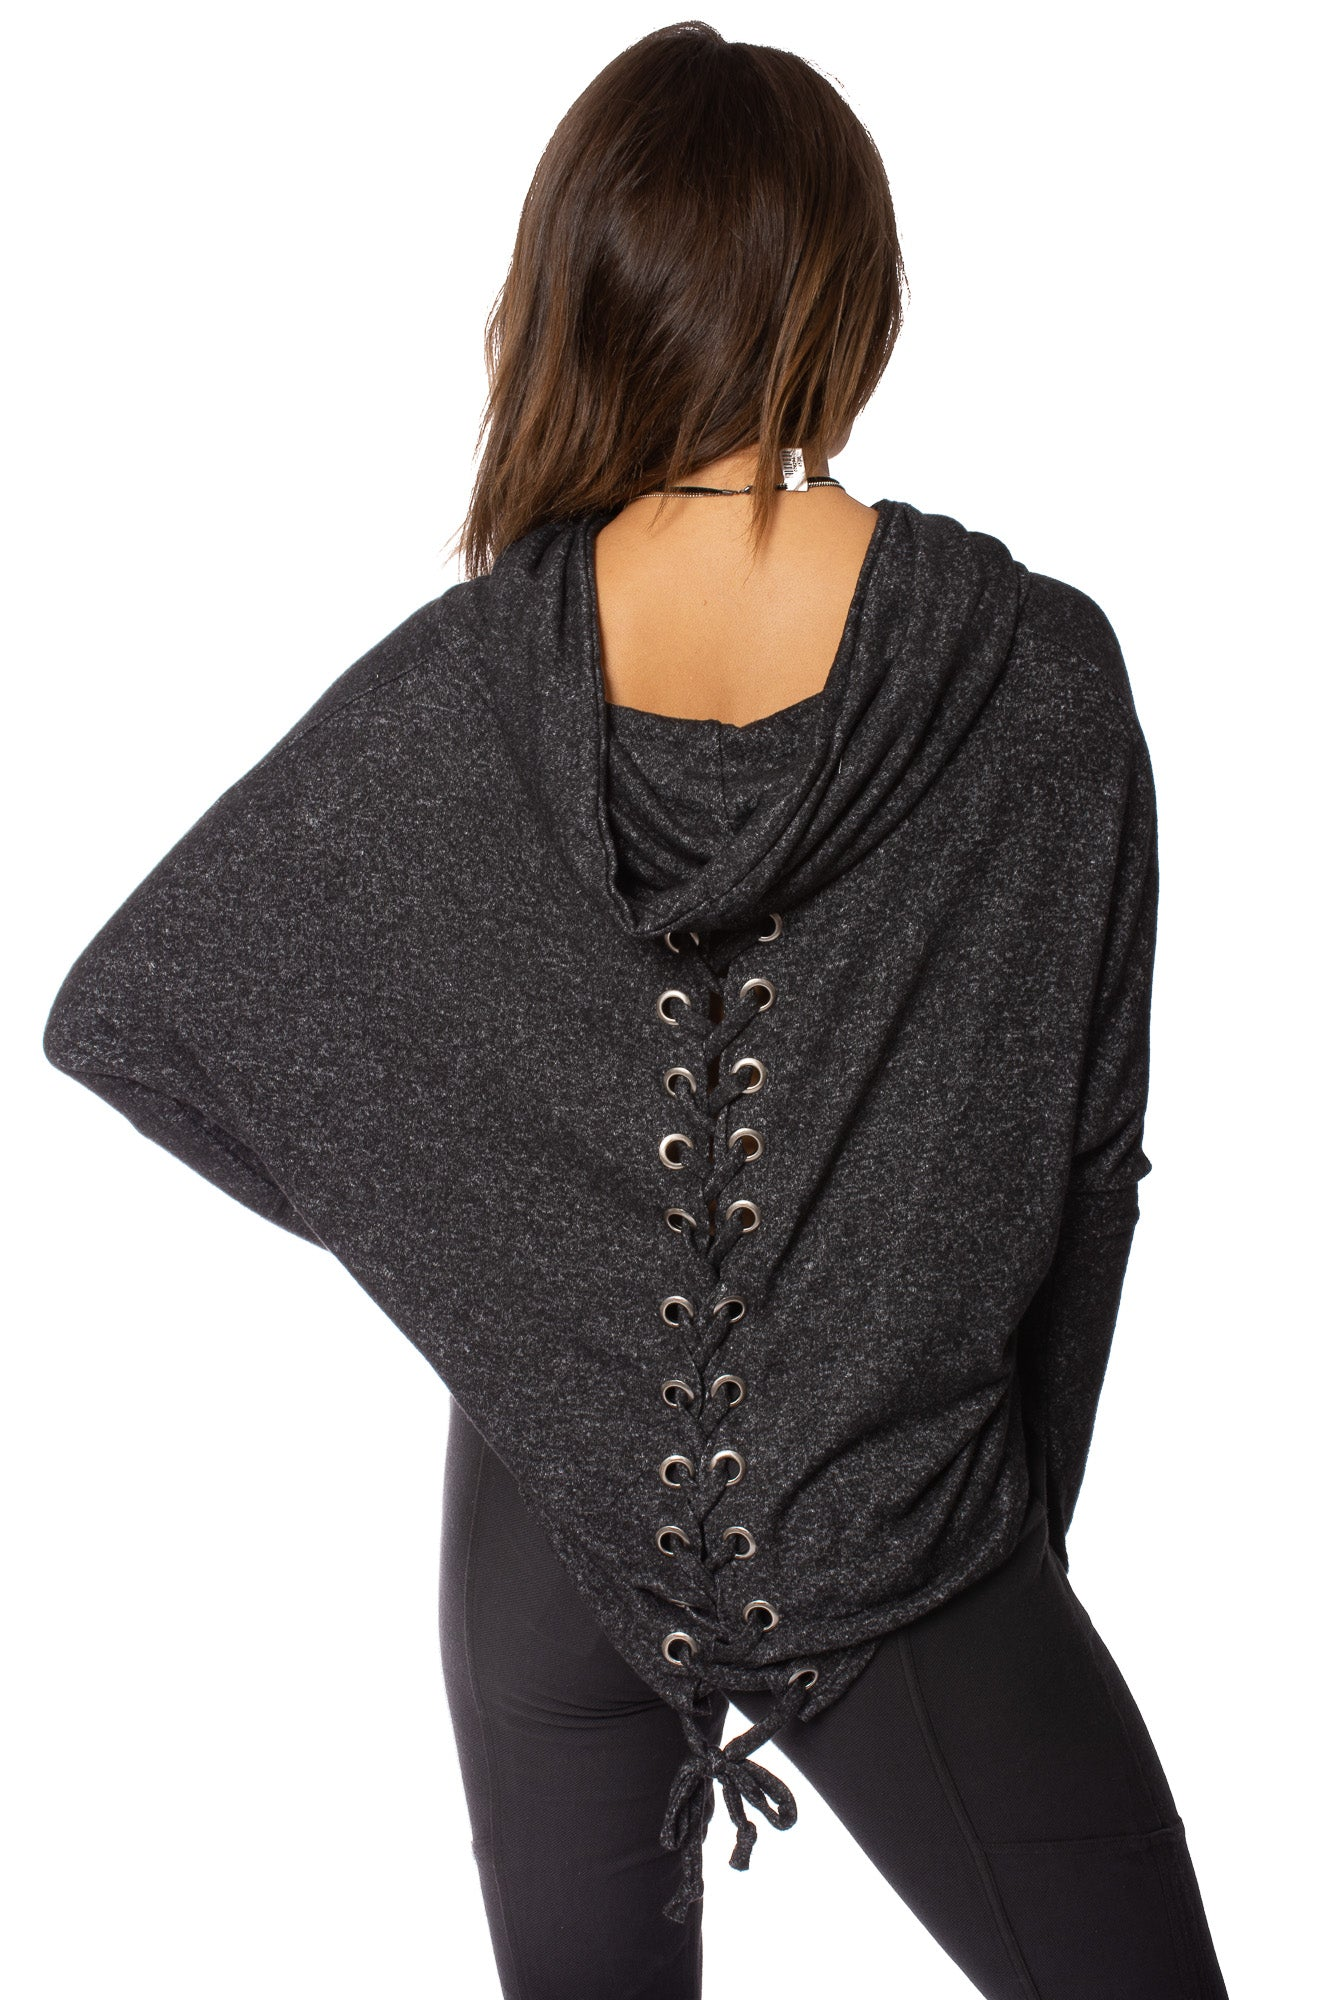 Lou & Co. - Tie Back Sweatshrt (W381, Charcoal)